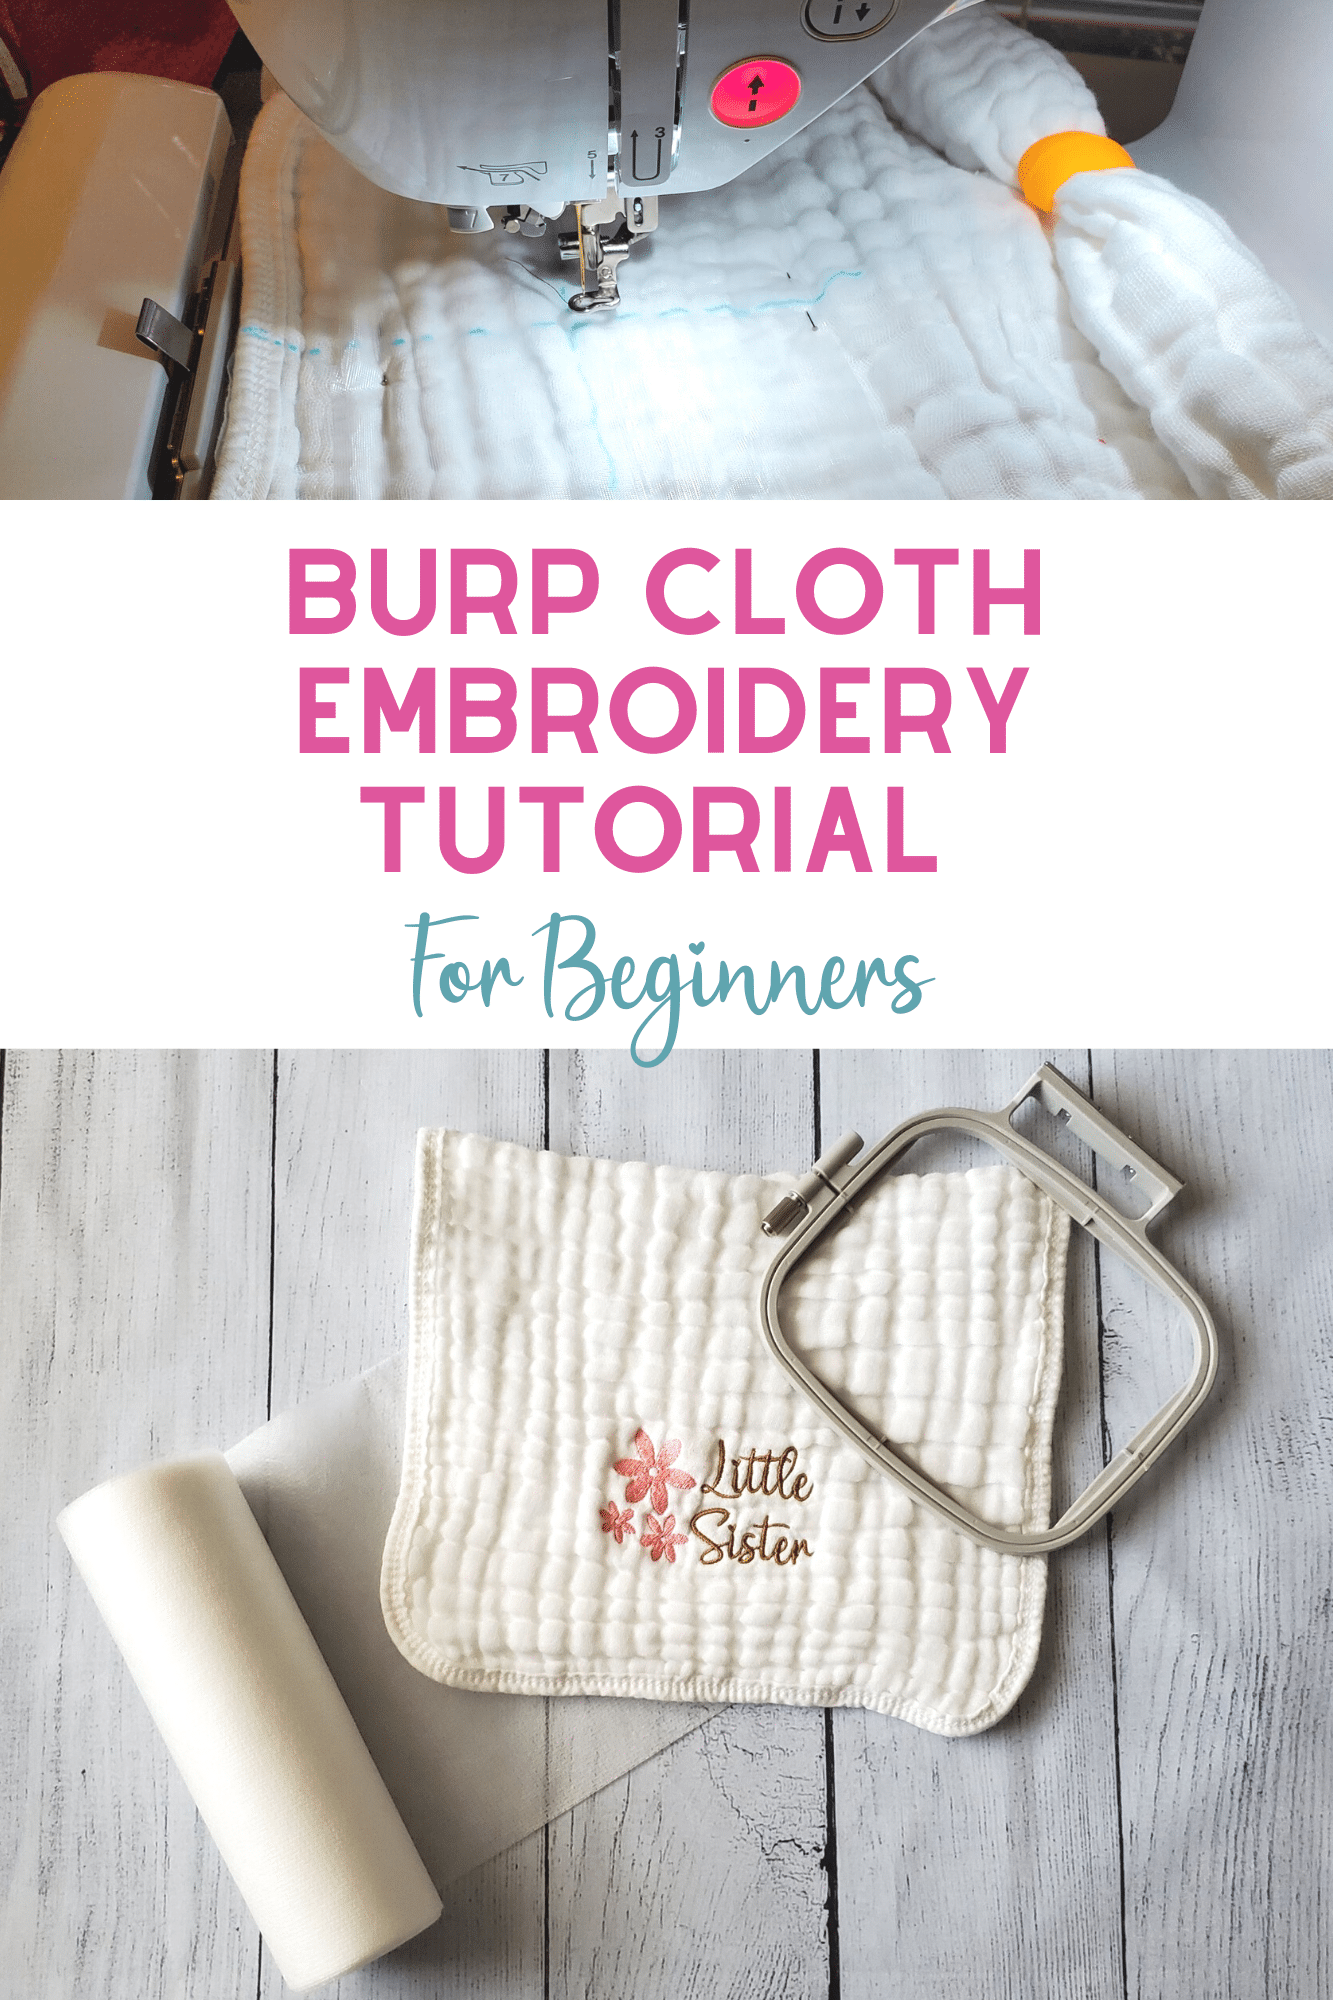 burp cloth embroidery tutorial for beginner